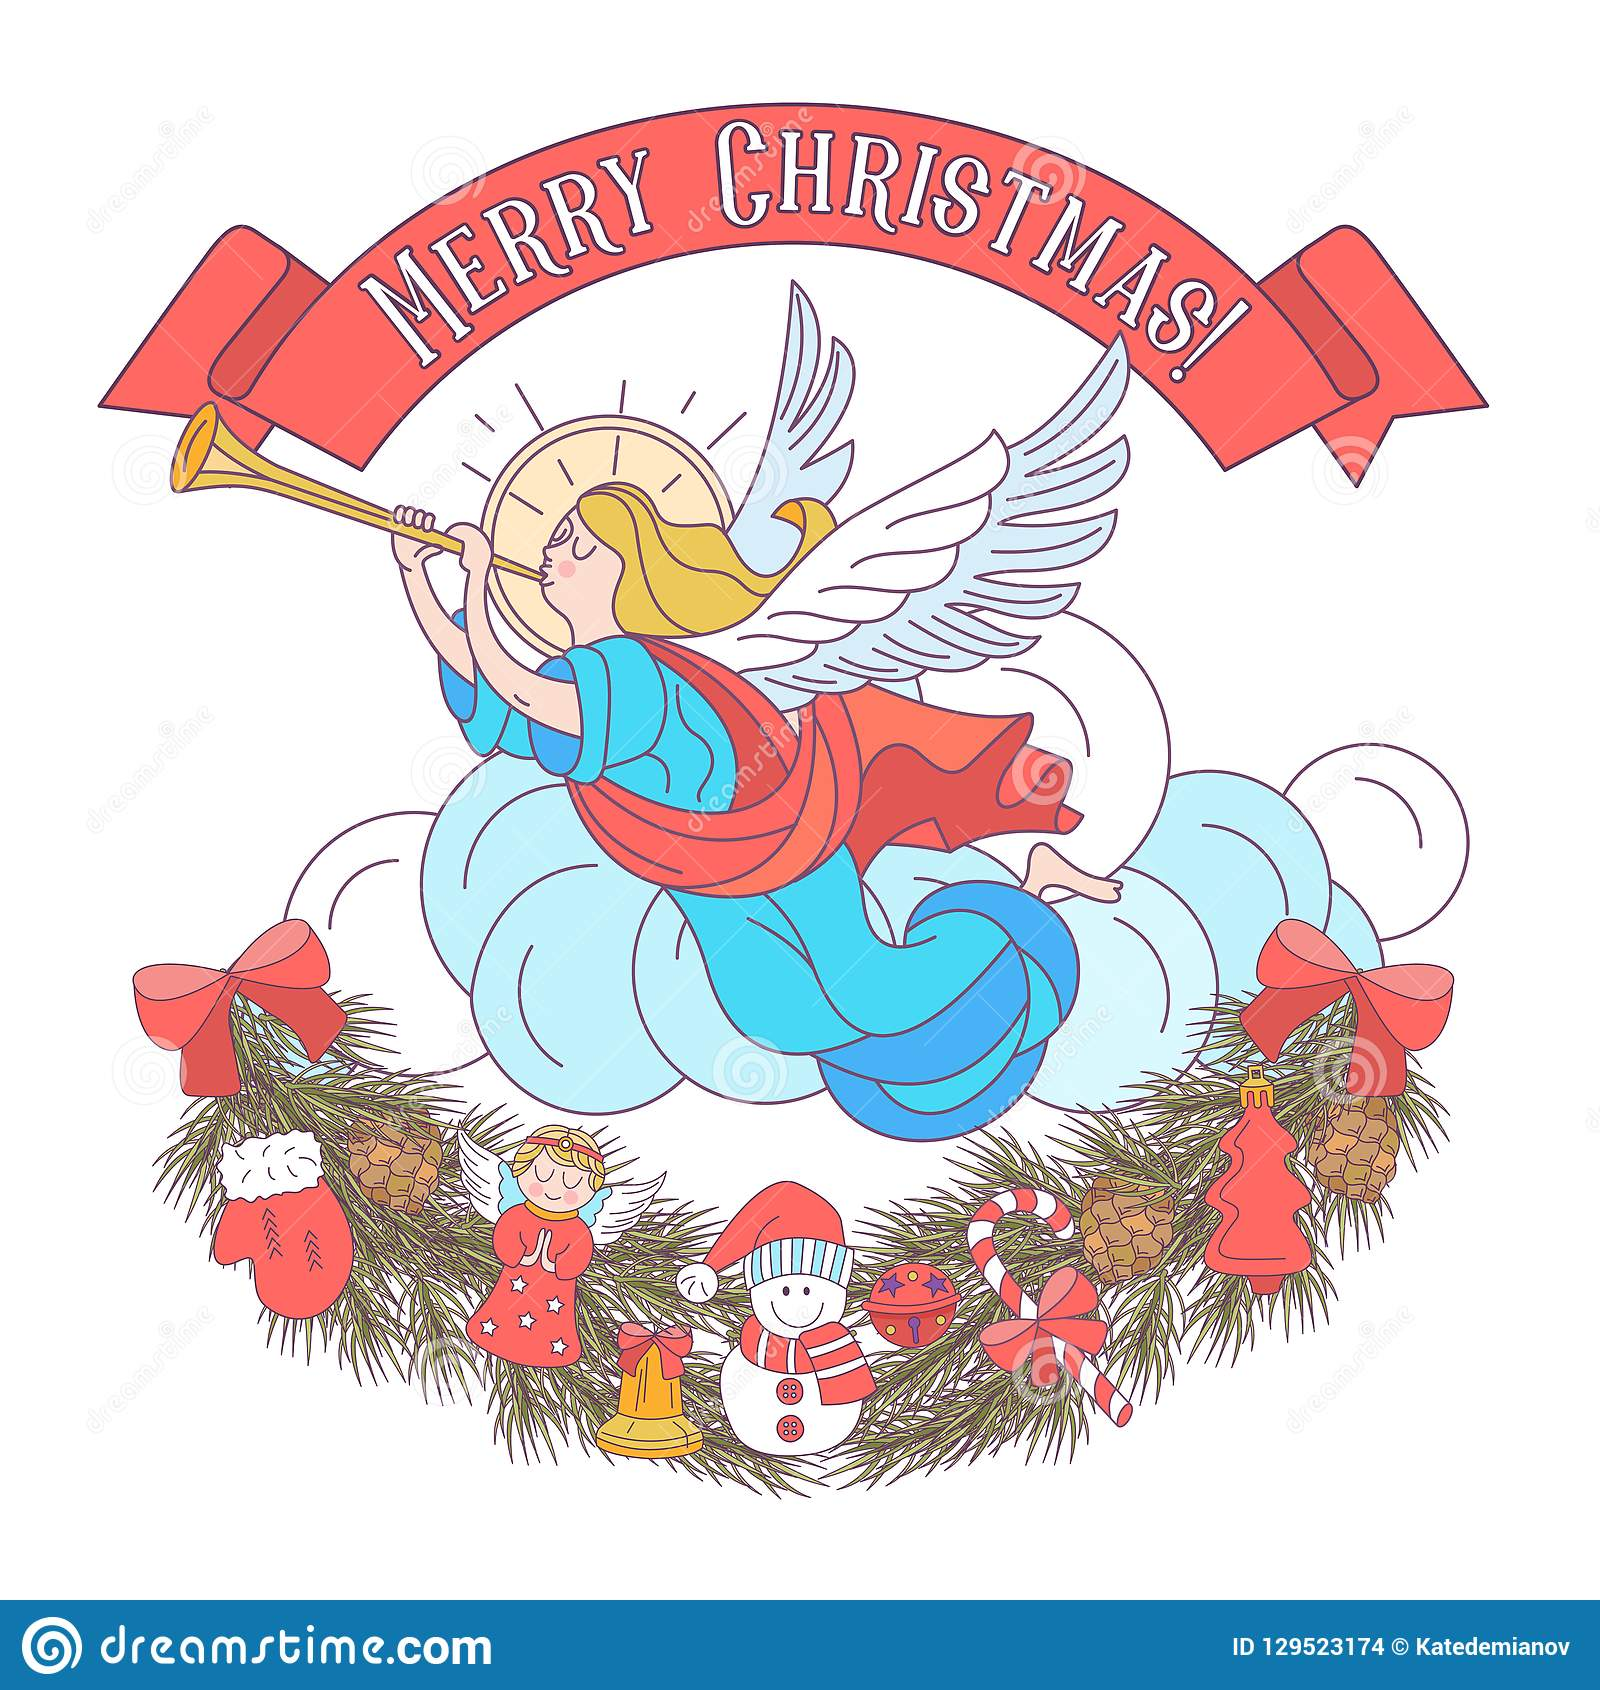 Christmas Angels.Merry Christmas Angels Blowing Trumpets Vector